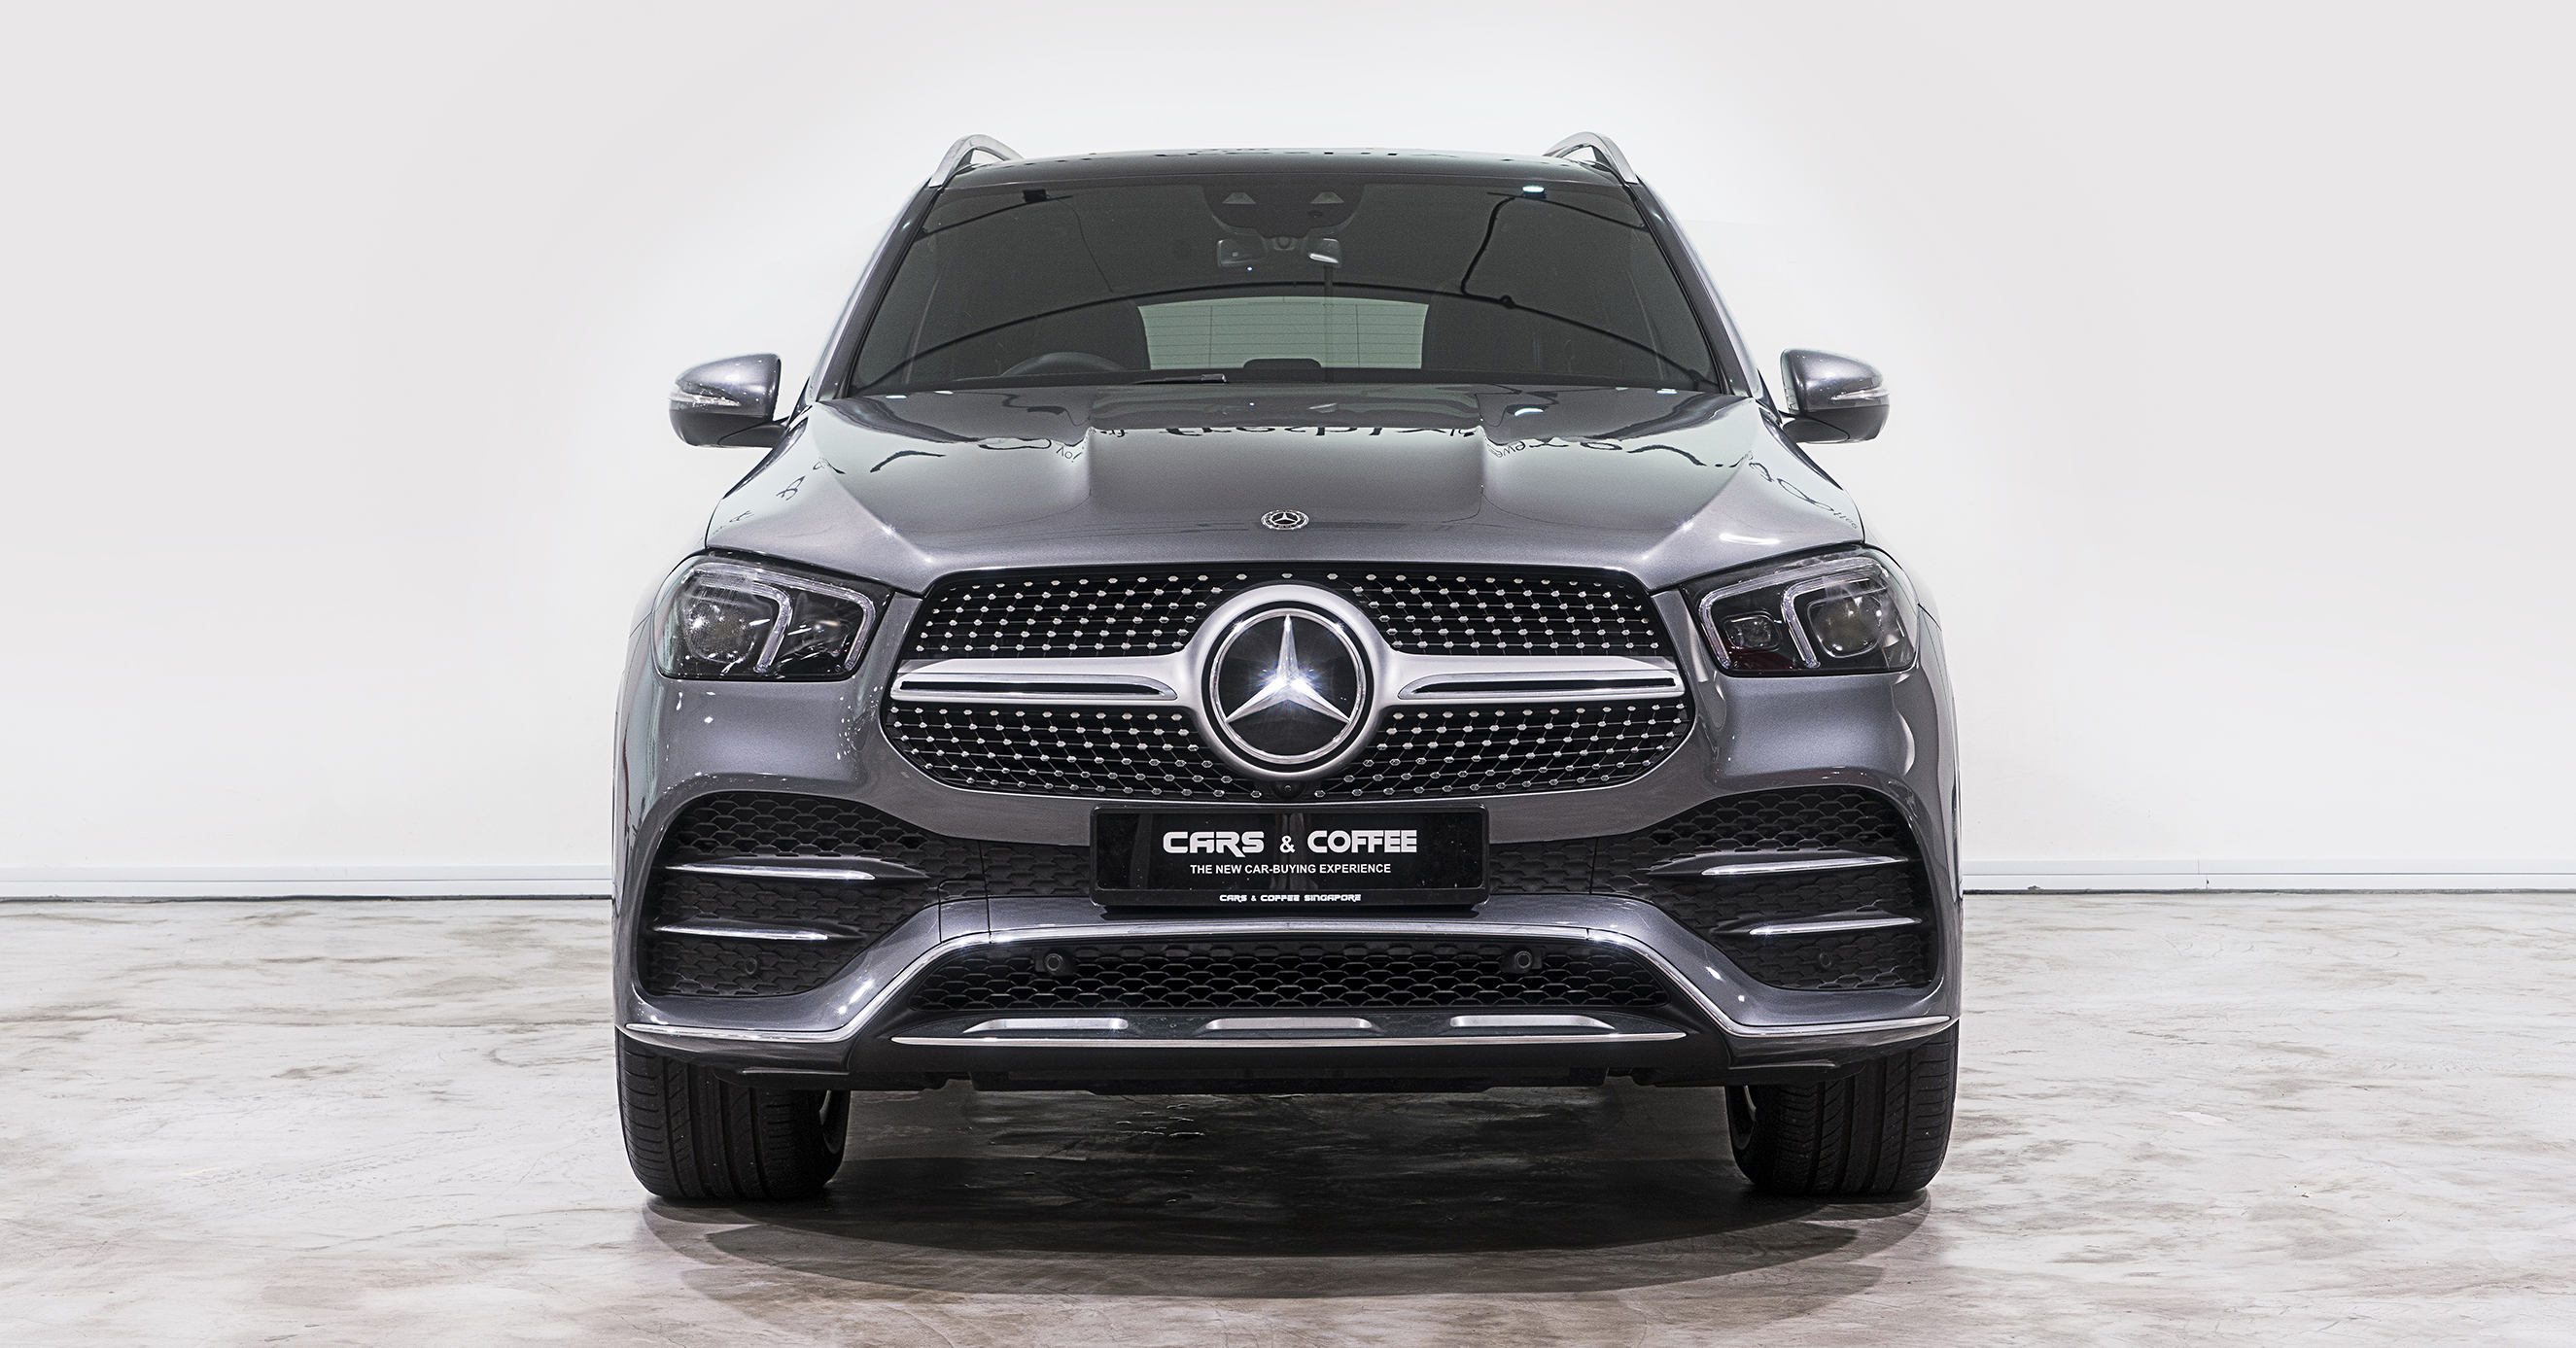 The luxury SUV that started the segment once again leads the way. Roomier, with a 3-inch-longer wheelbase, it's also more agile and aerodynamic. And from LED headlamps to a bold yet elegant cabin, it wraps first-in-class tech in finely tailored style.